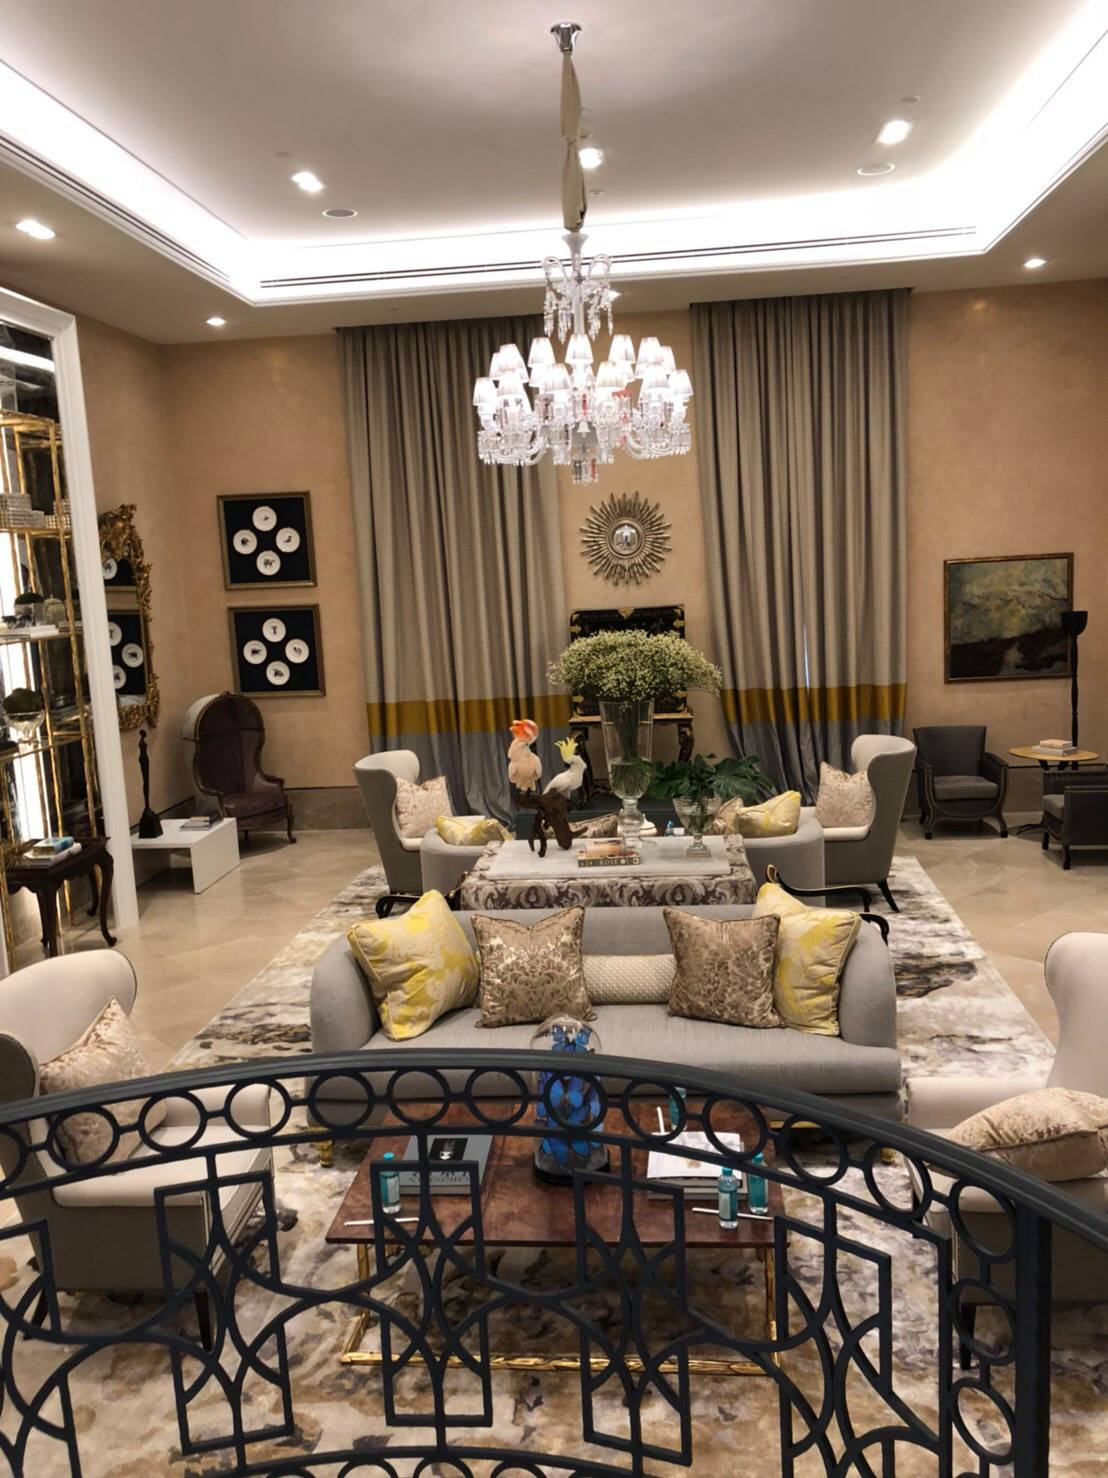 Bangkok Property Condo Apartment House Real Estate For Sale in Phrom Phong Sukhumvit Impressive Well Located